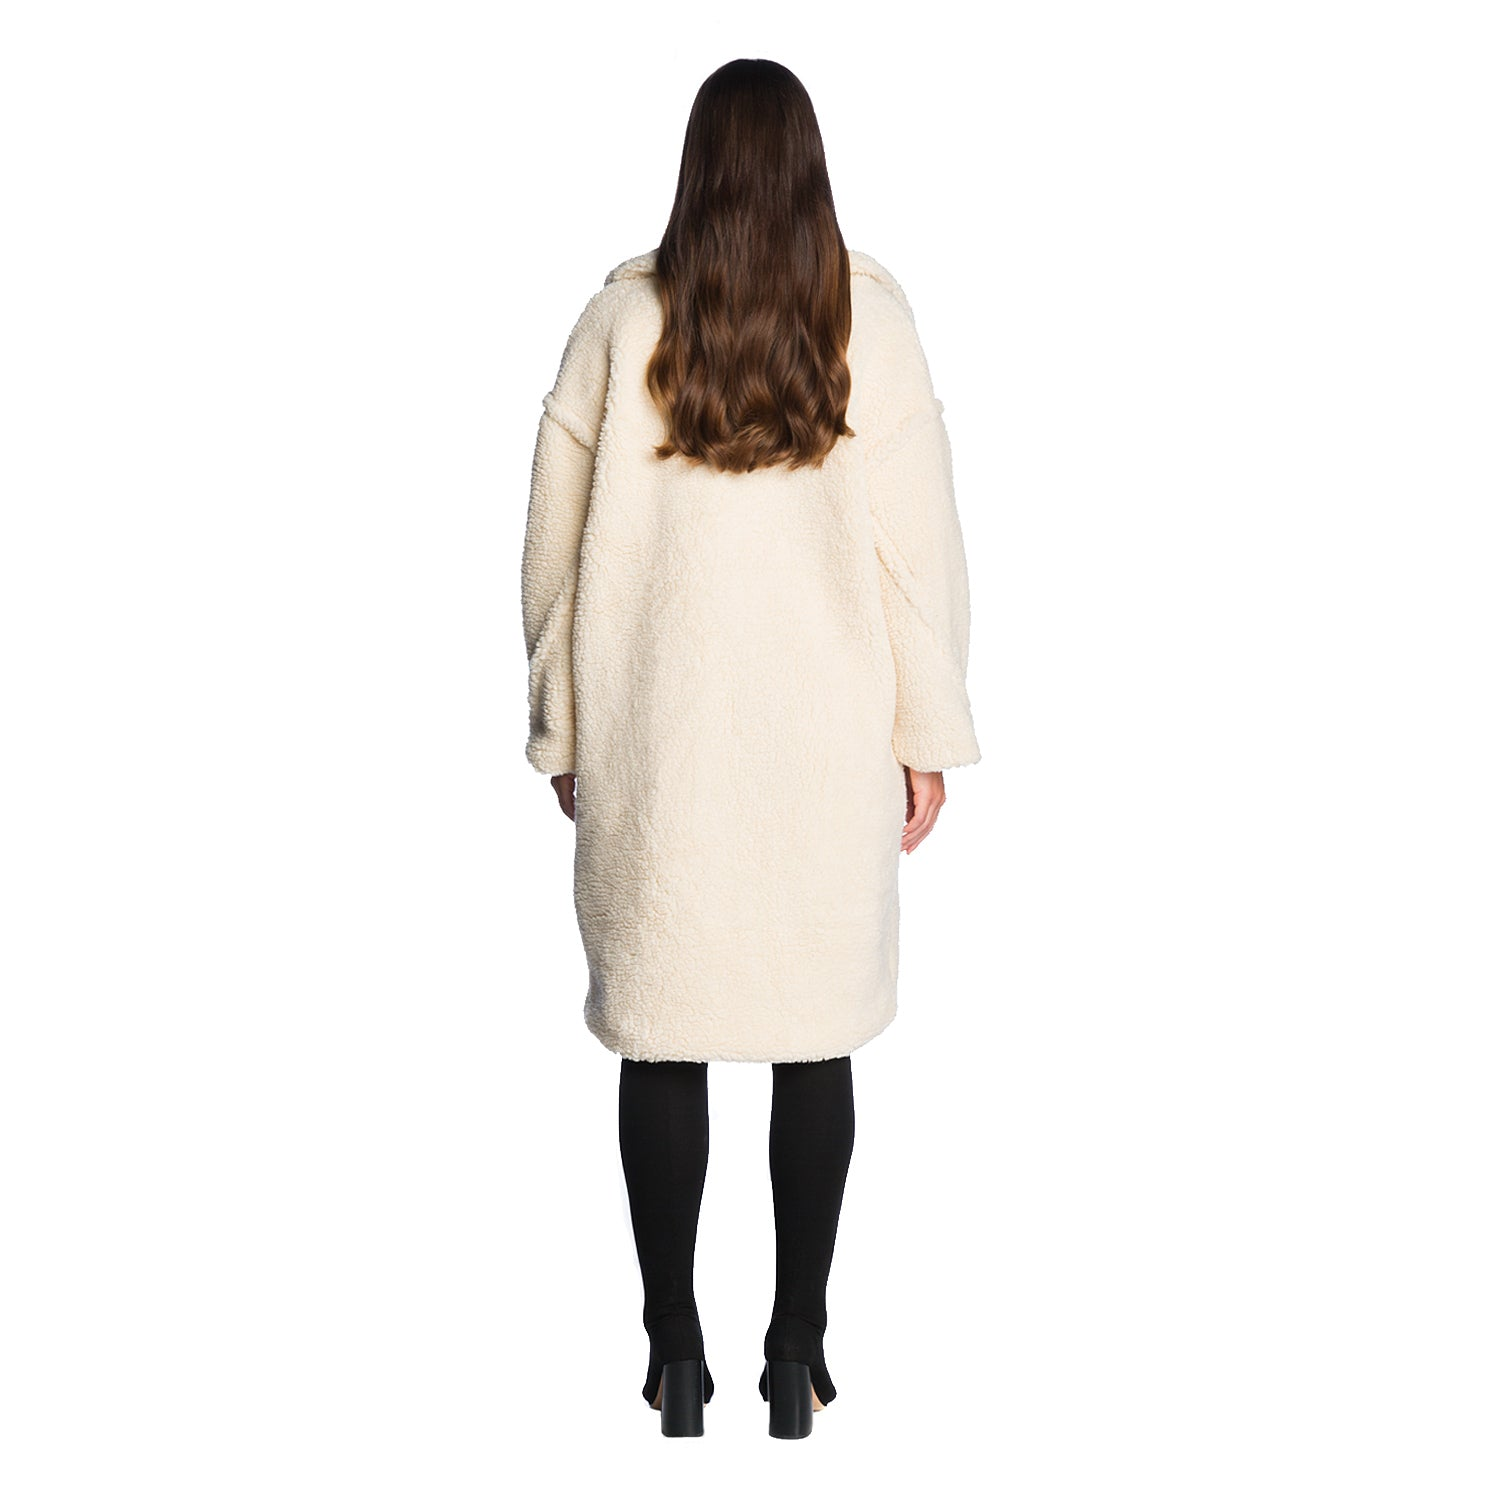 The Teddy Coat (Cream)